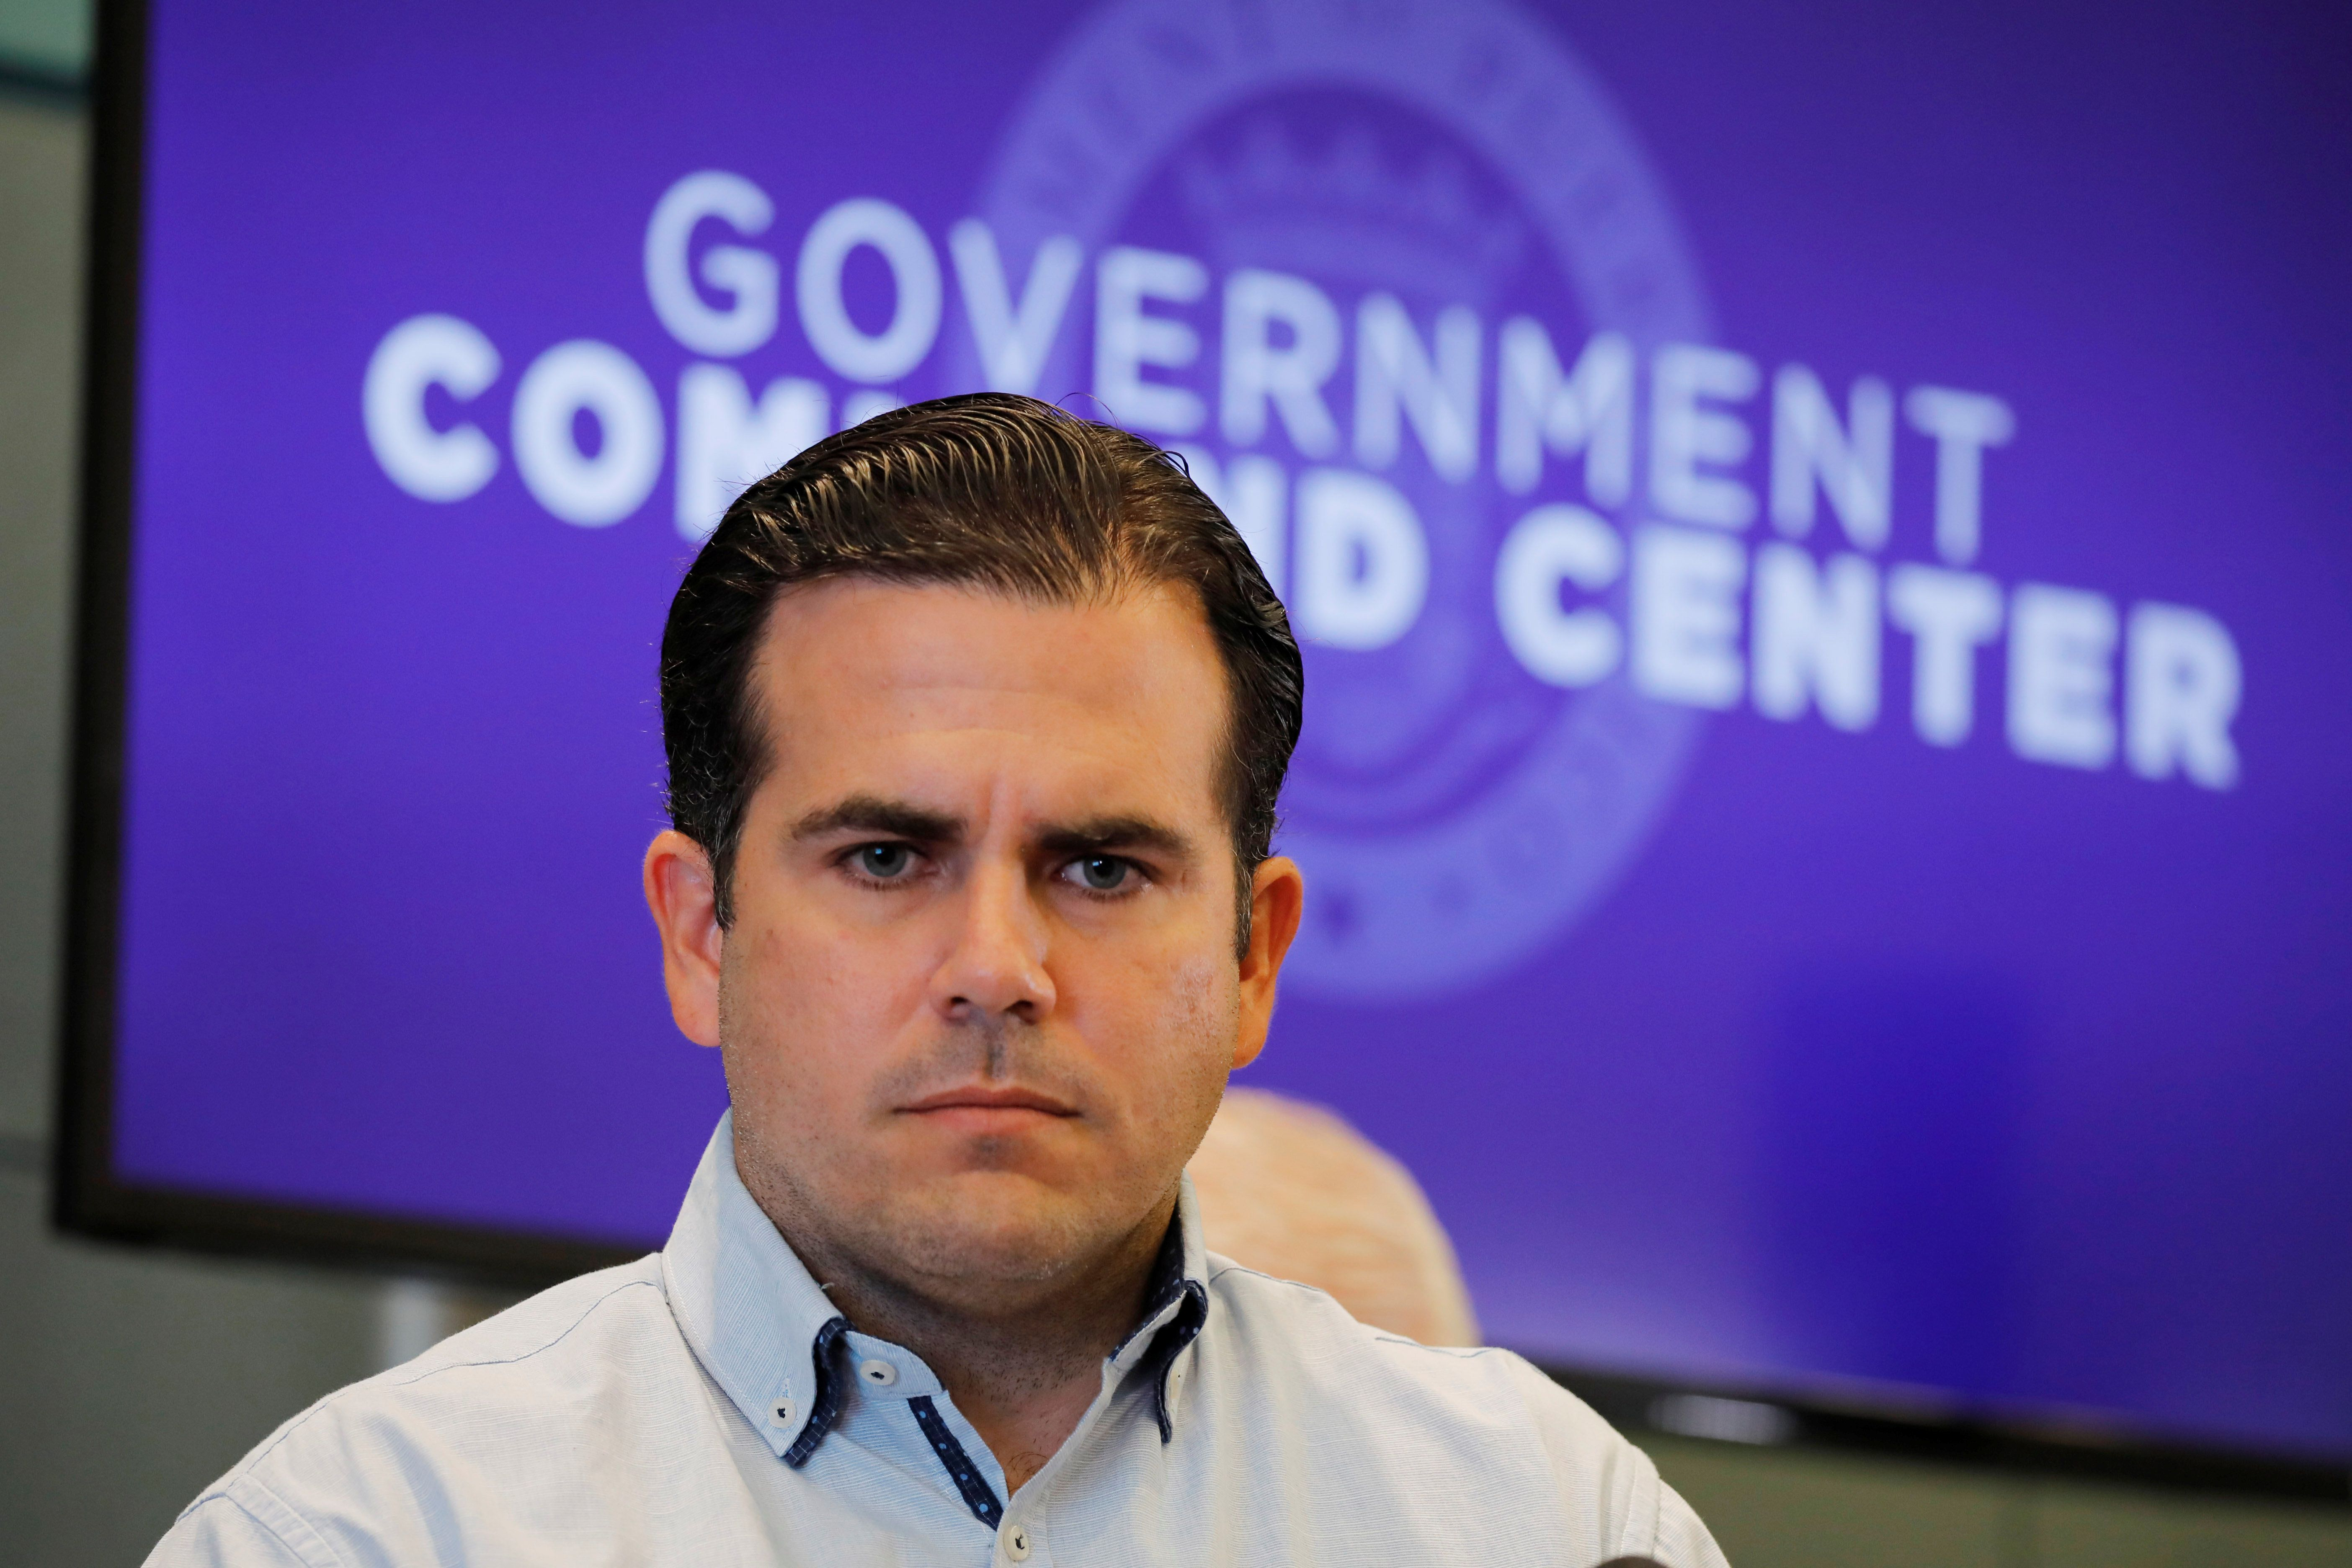 Governor of Puerto Rico Ricardo Rossello attends a news conference days after Hurricane Maria hit Puerto Rico, in San Juan, Puerto Rico September 30, 2017. REUTERS/Carlos Barria